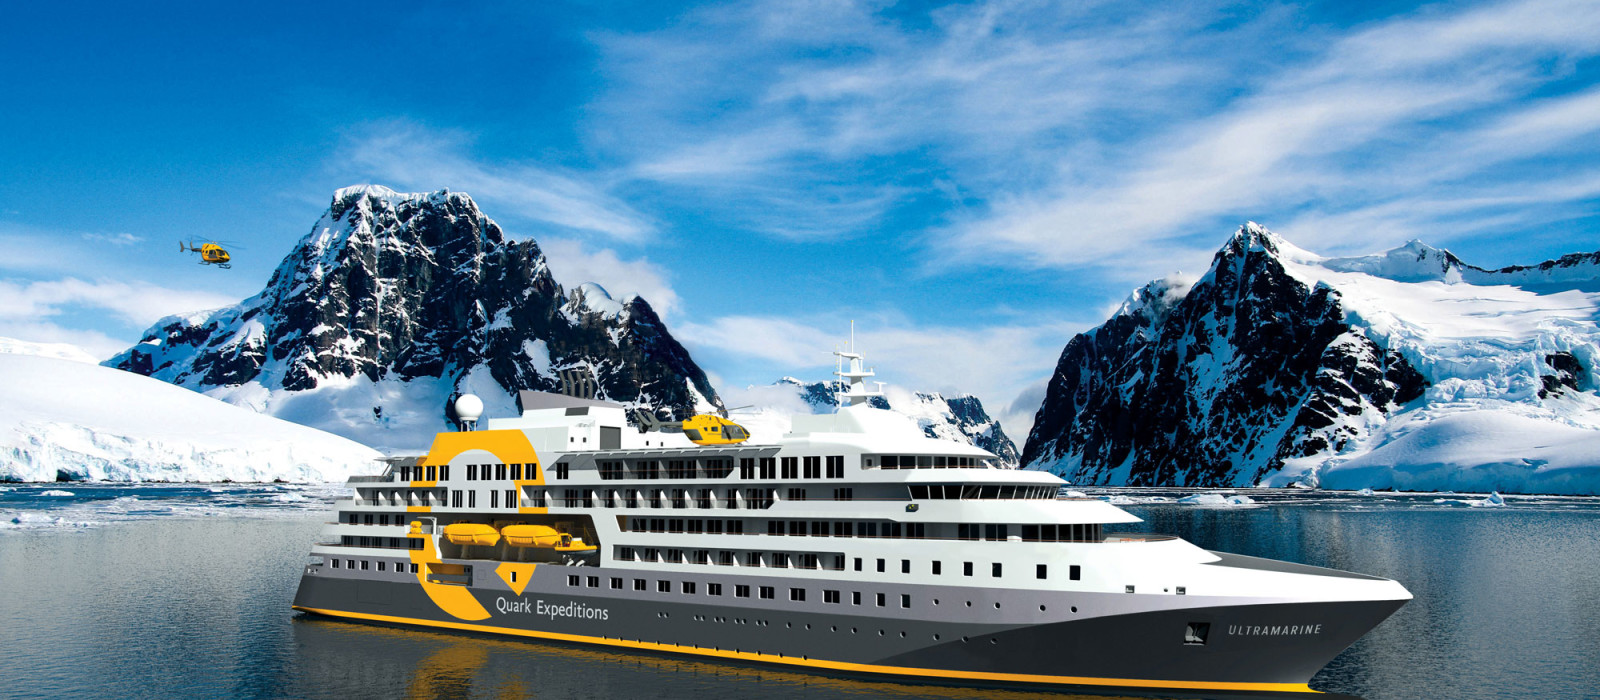 Hotel Ultramarine by Quark Expeditions Antarctica